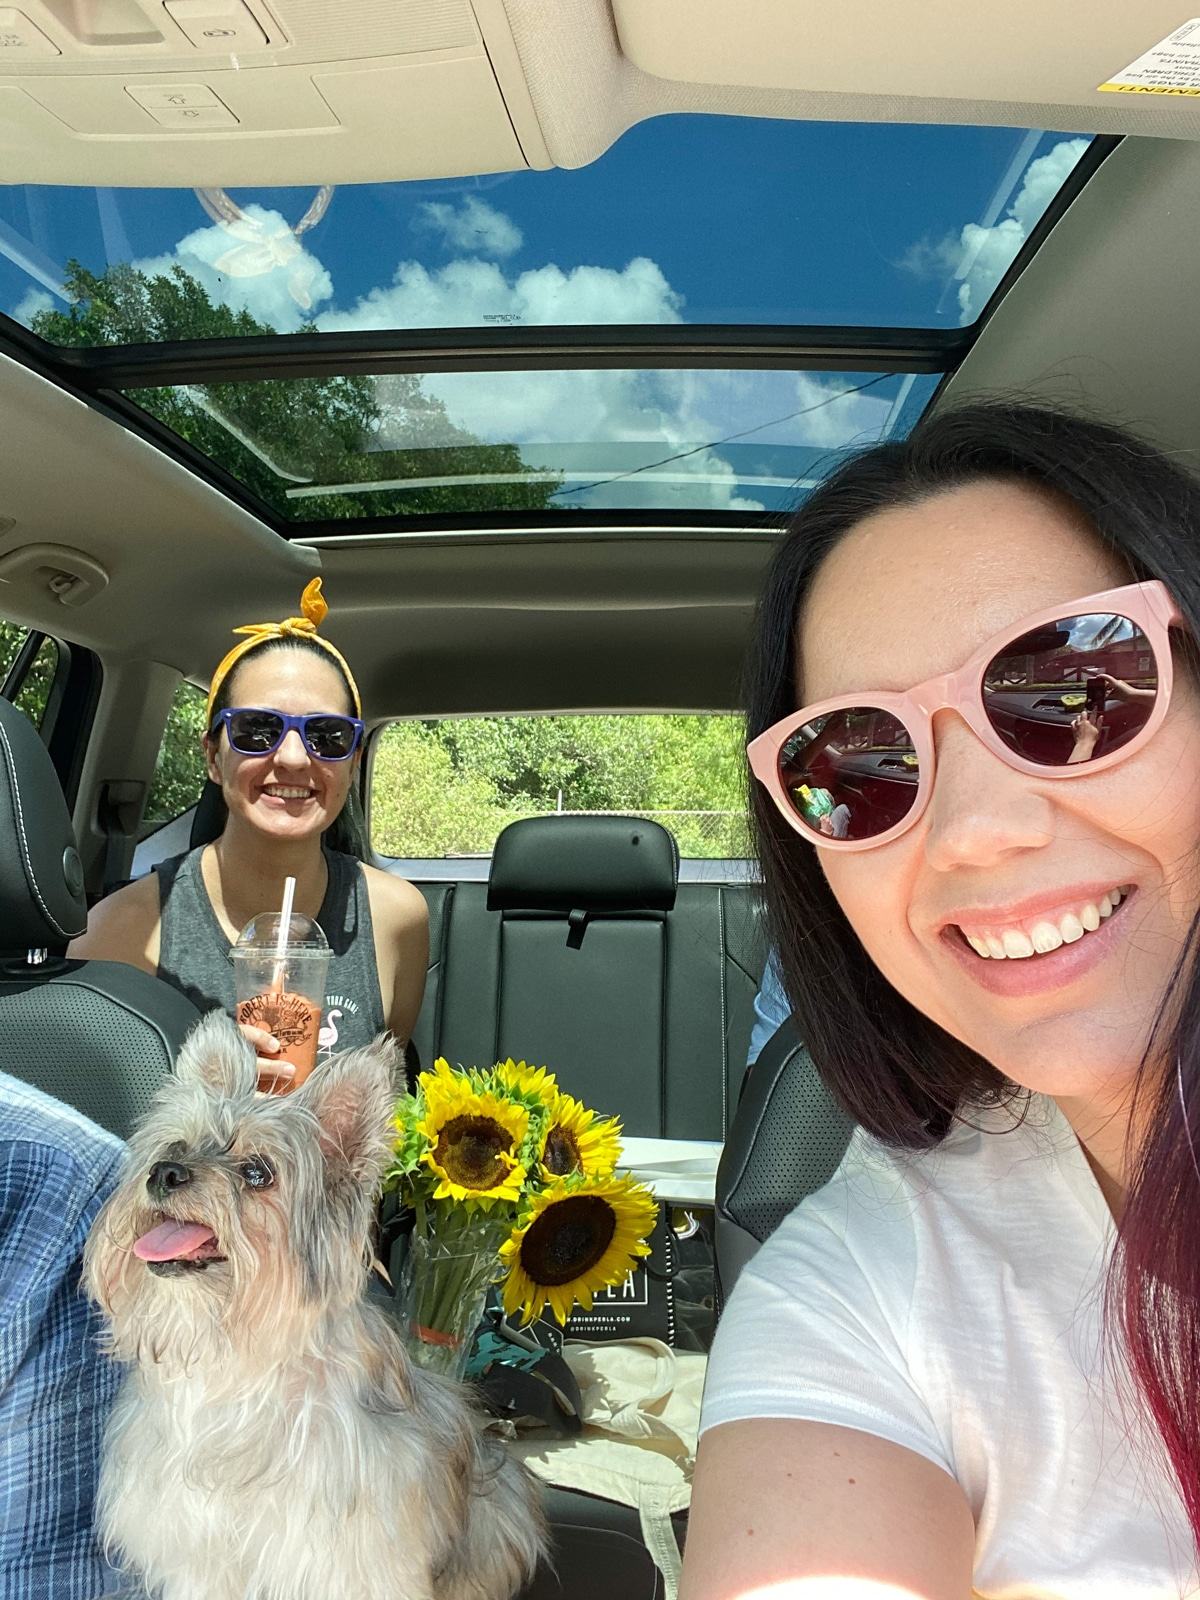 Fun Things To Do in Homestead, Florida - Have a car picnic at Robert Is Here fruit stand